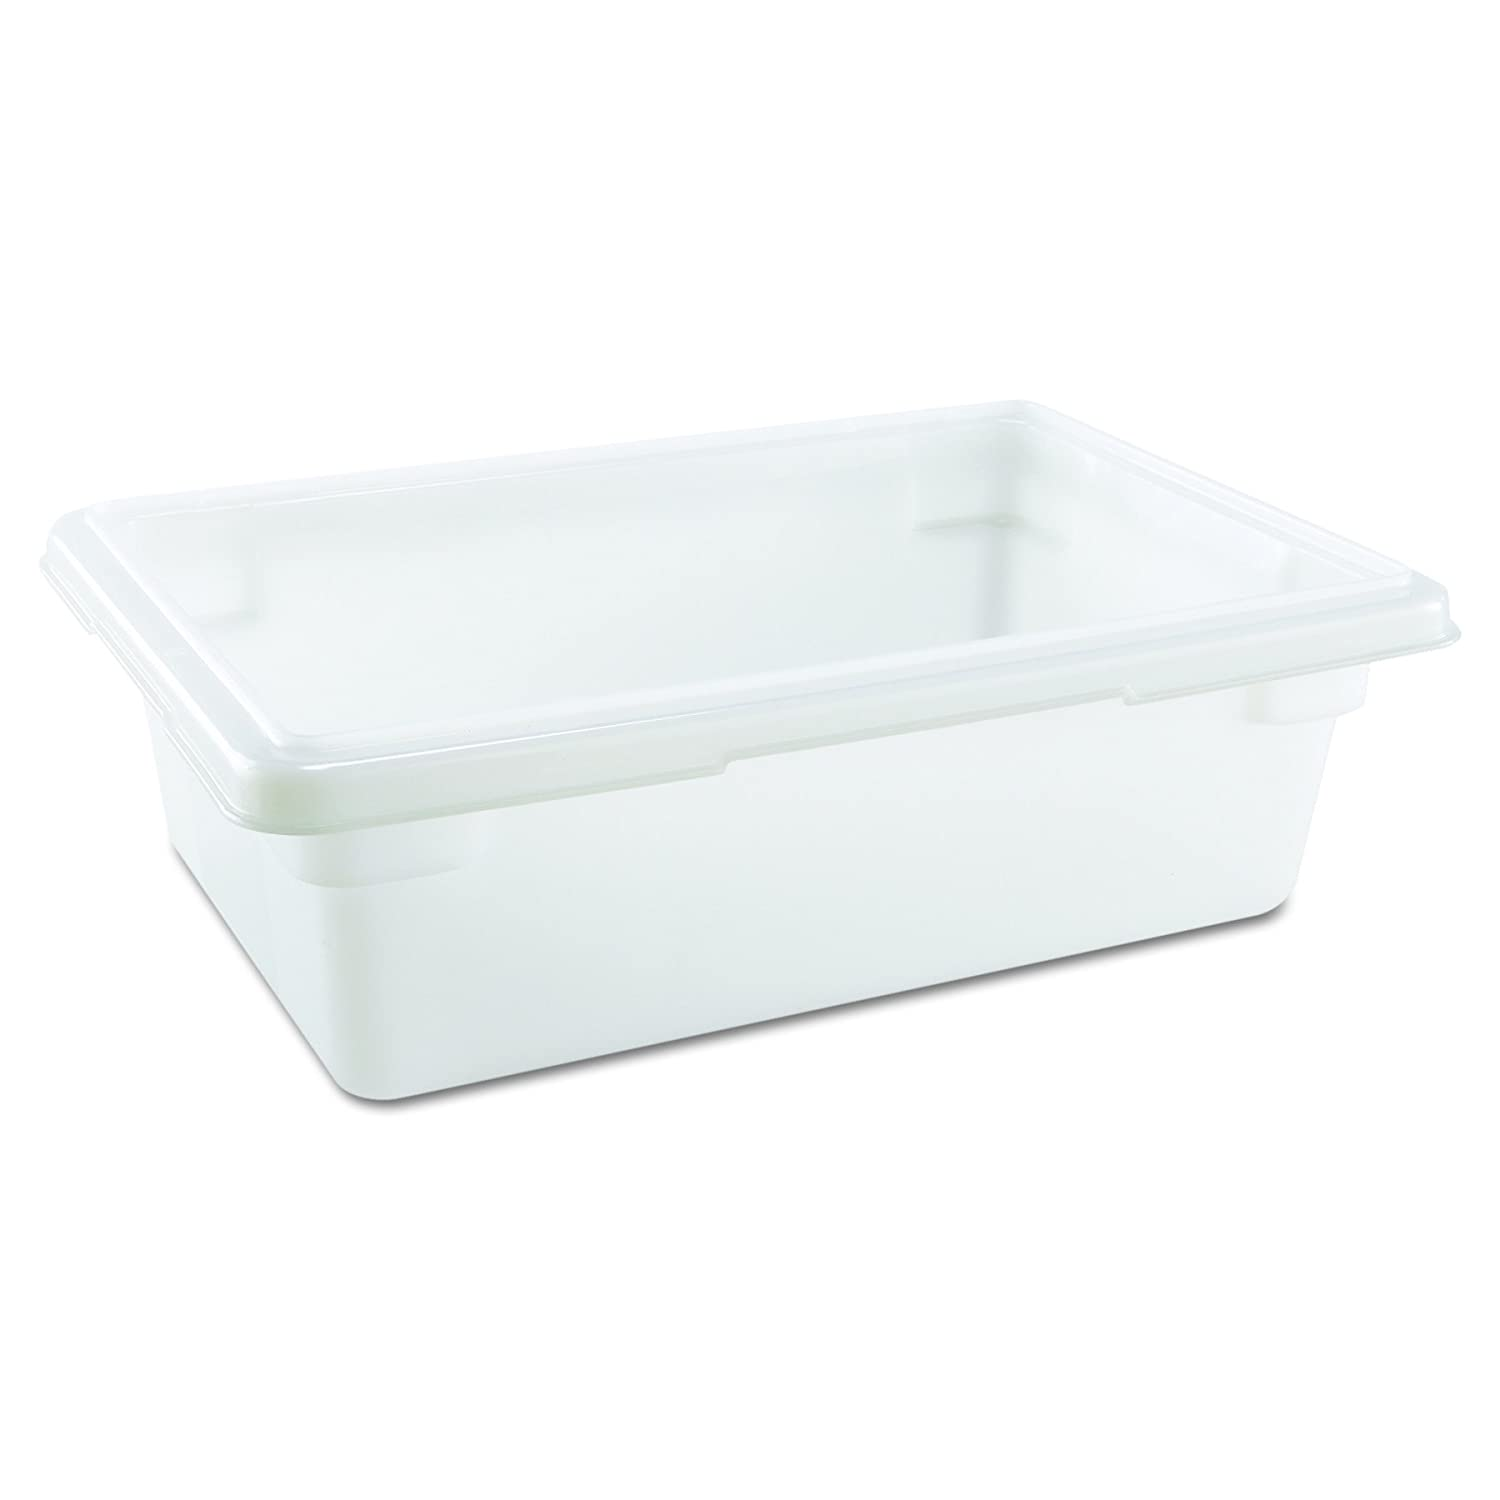 """Rubbermaid Commercial 3509 3-1/2 gallon Capacity, 18"""" Length x 12"""" Width x 6"""" Depth, White Color, High-Density Polyethylene Food and Tote Box (Lids are sold separately)"""